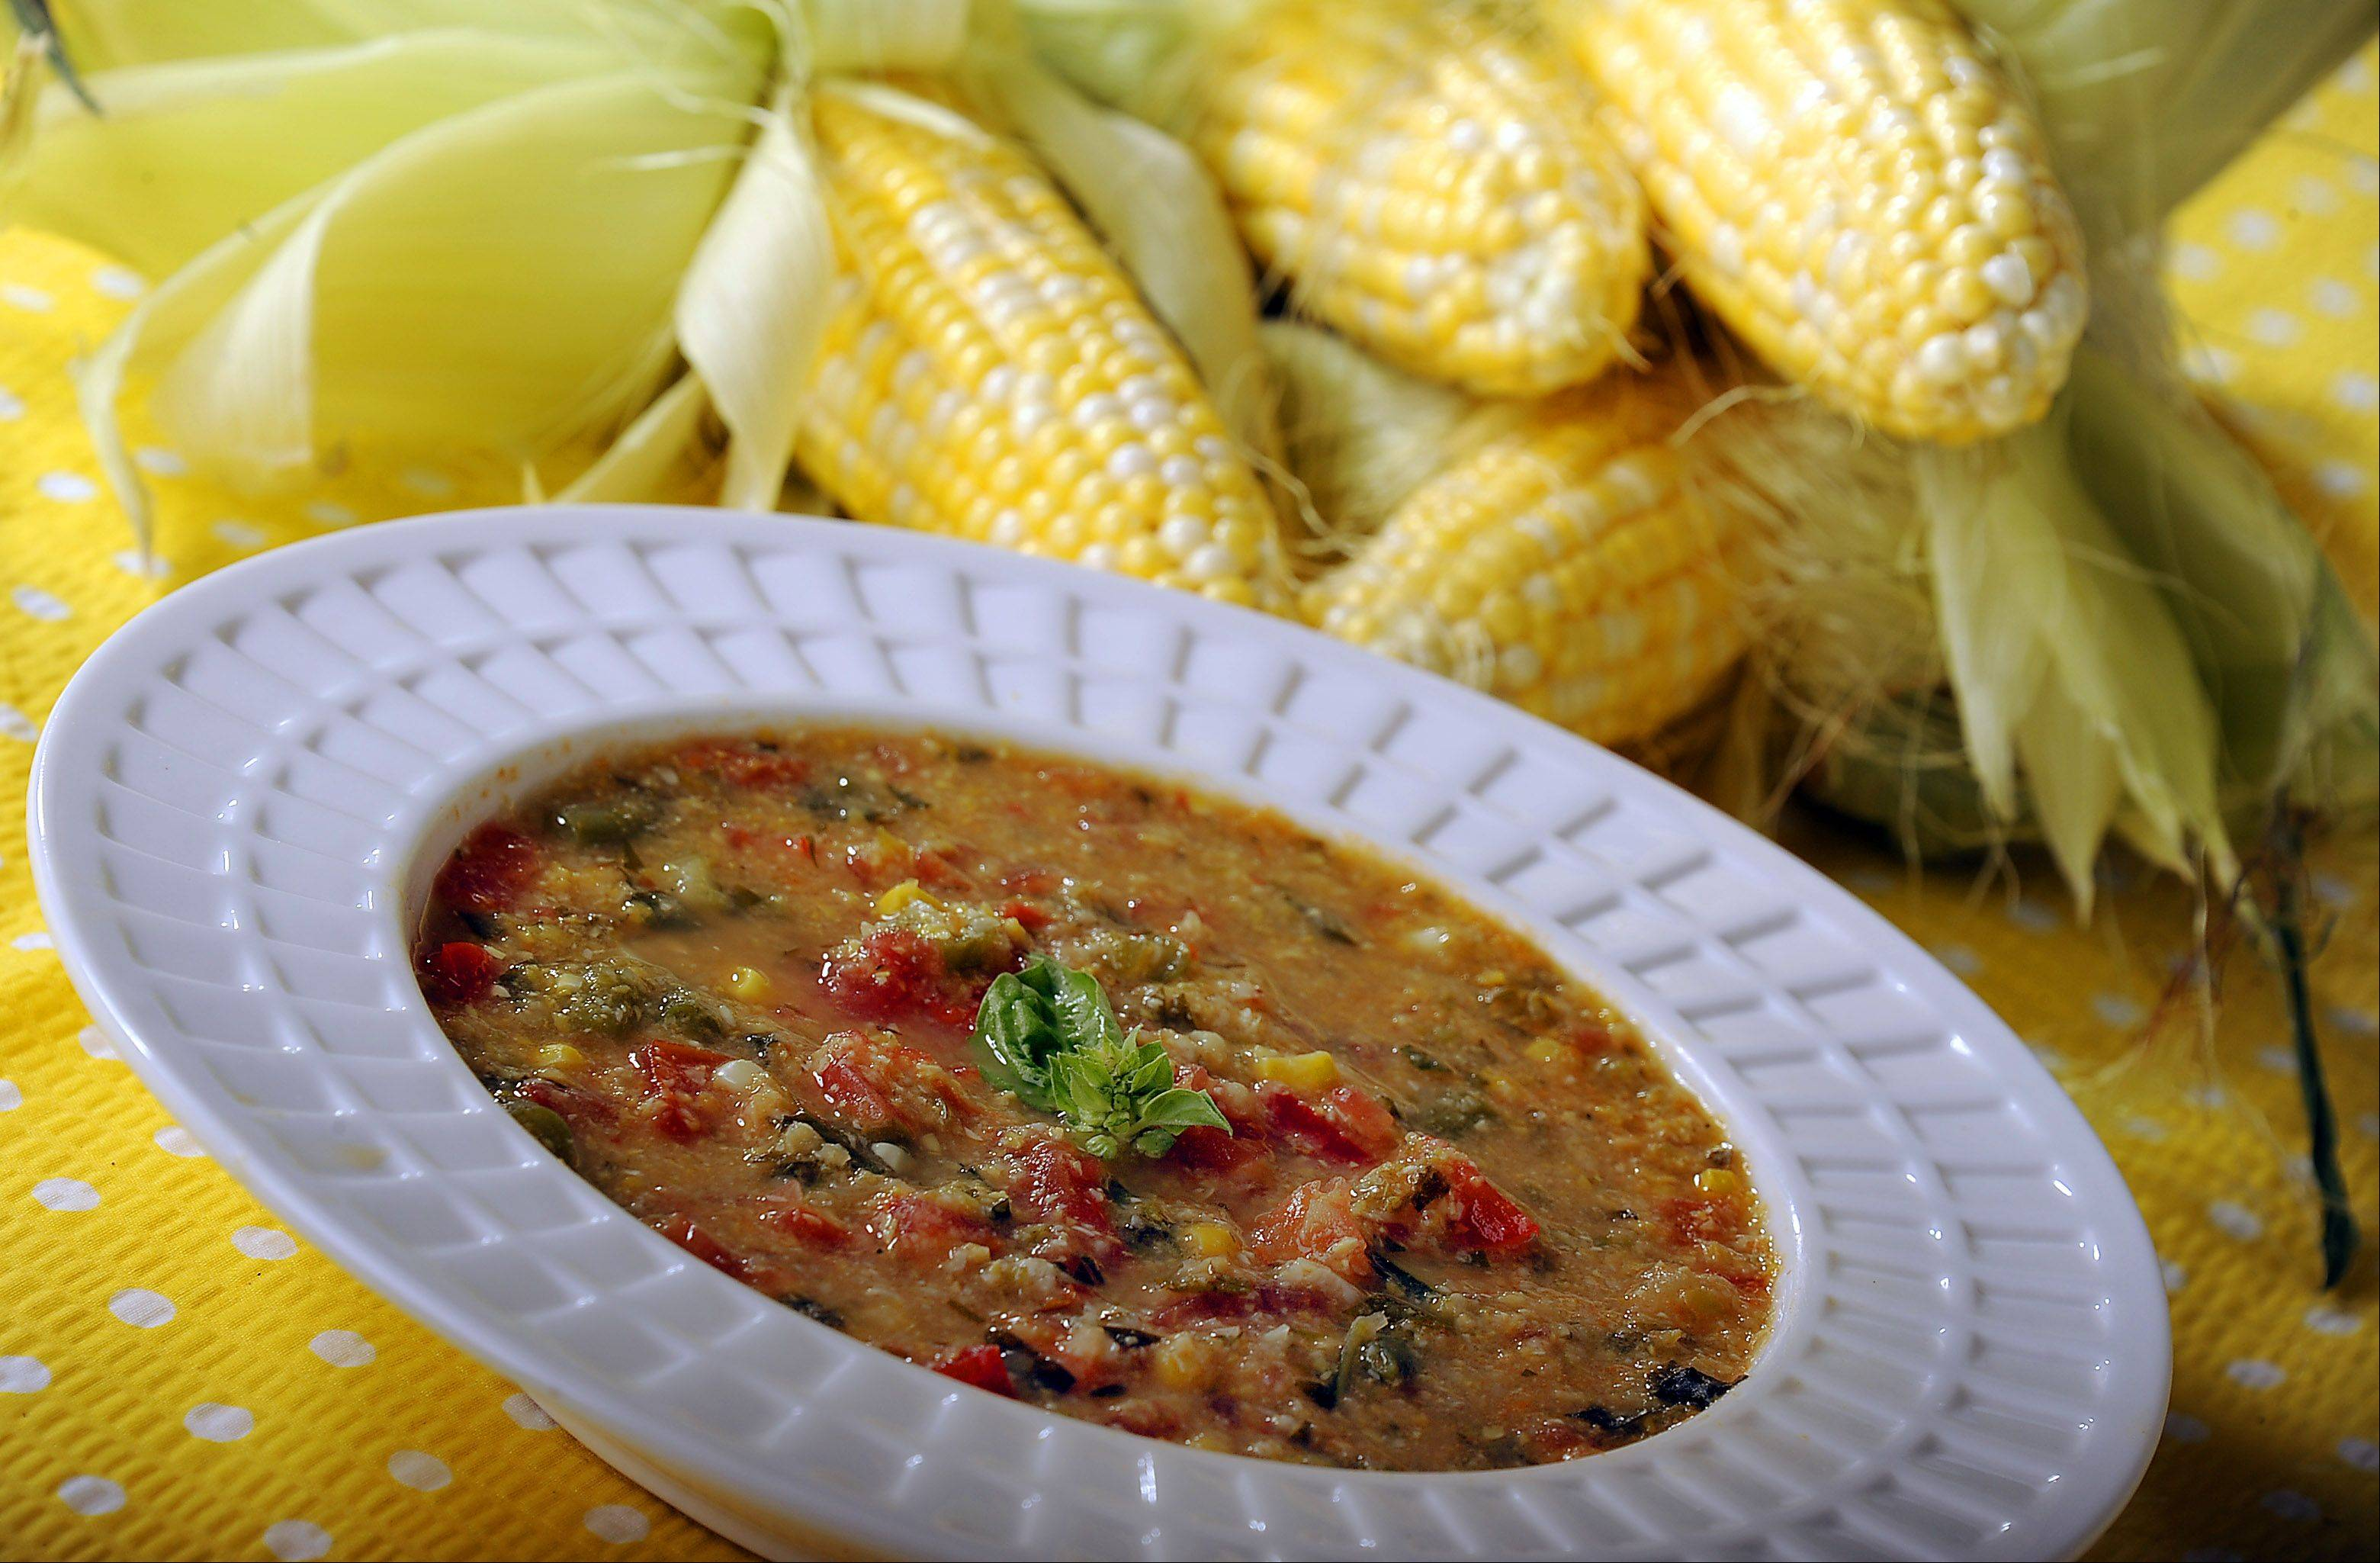 Soup is an easy way to use up summer vegetables like corn, summer squash, peppers and beans.